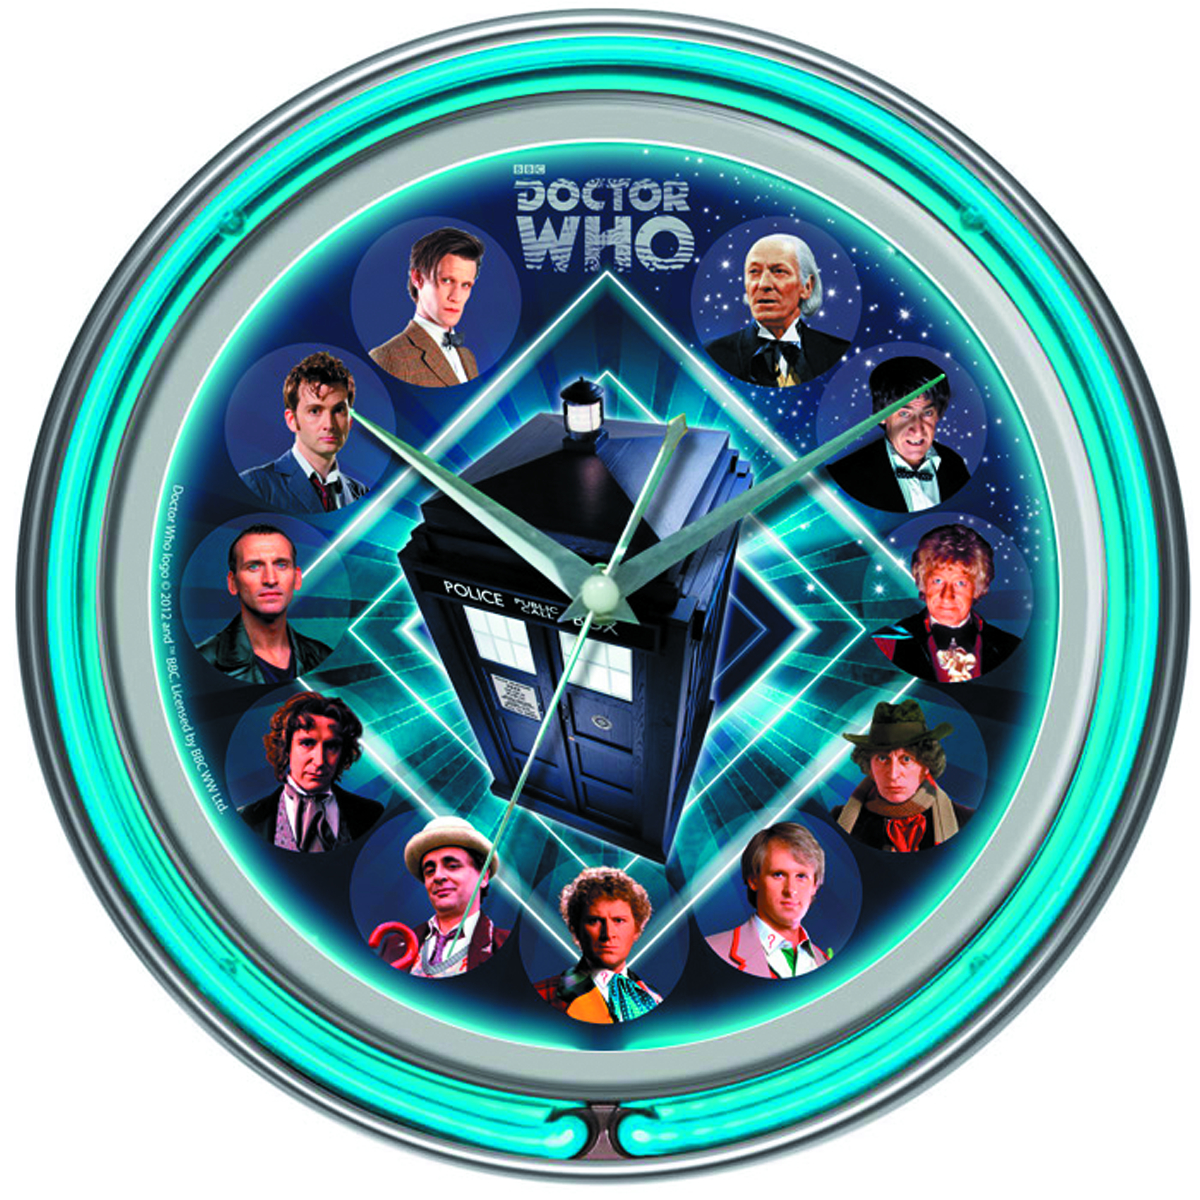 previewsworld doctor who double neon wall clock c 1 1 2. Black Bedroom Furniture Sets. Home Design Ideas